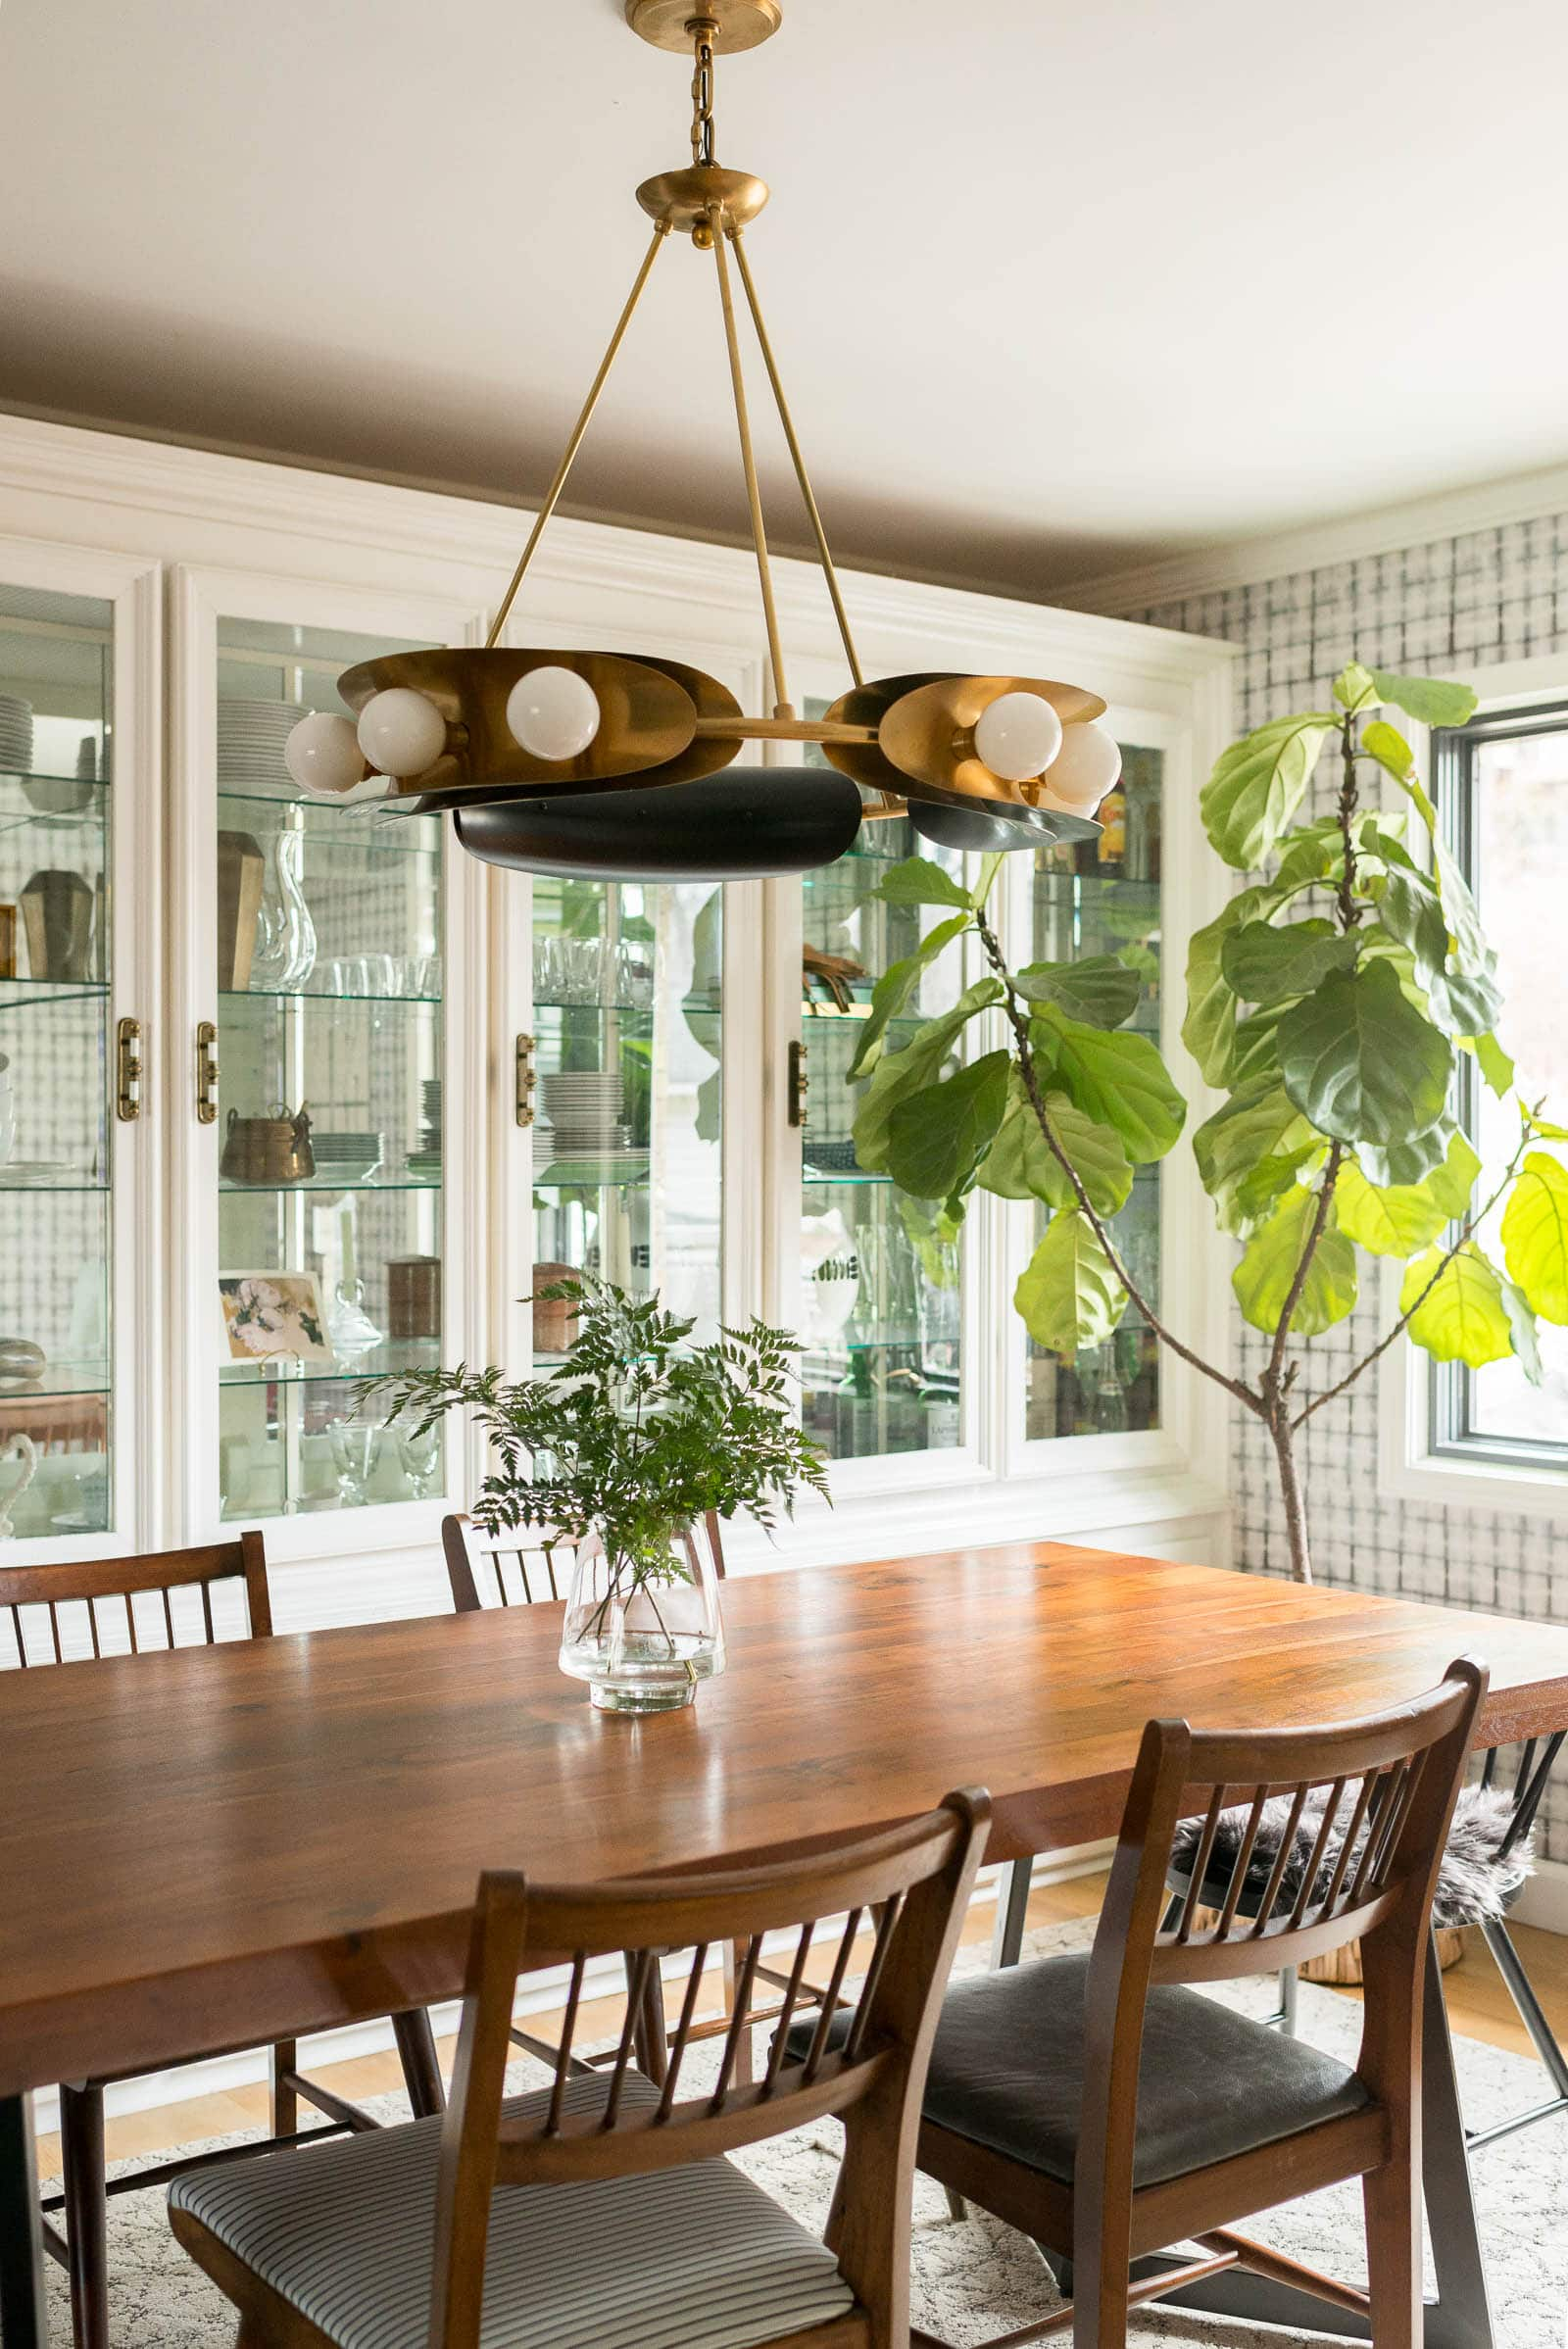 Corbett Lighting in Vintage Dining Room with Shibori Wallpaper and MidCentury Furniture